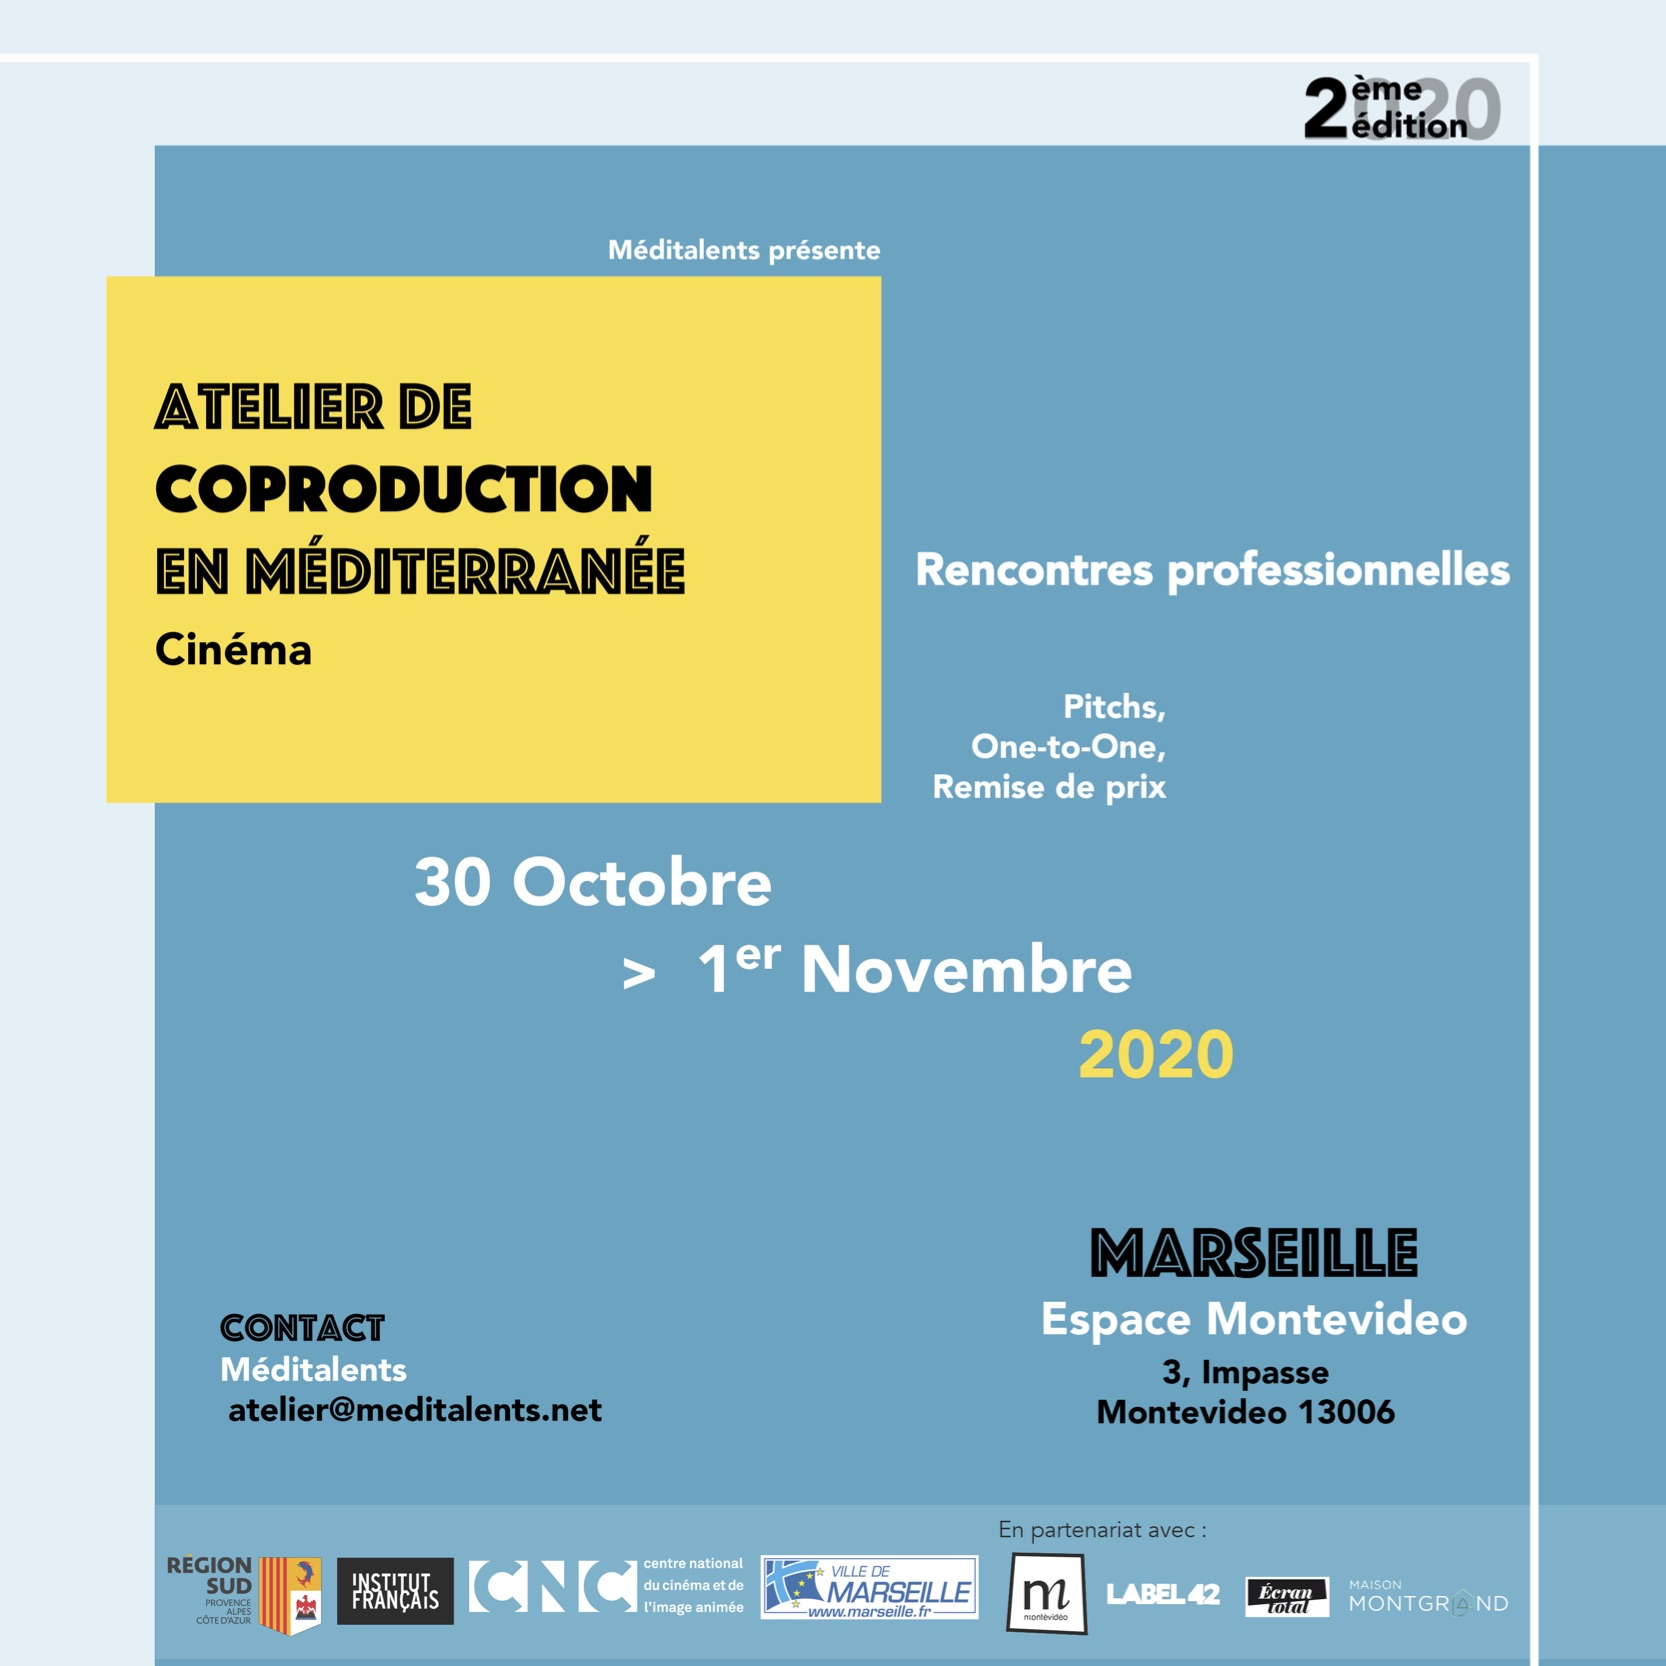 VISUEL ATELIER COPRODUCTION EN MEDITERRANEE - - copie